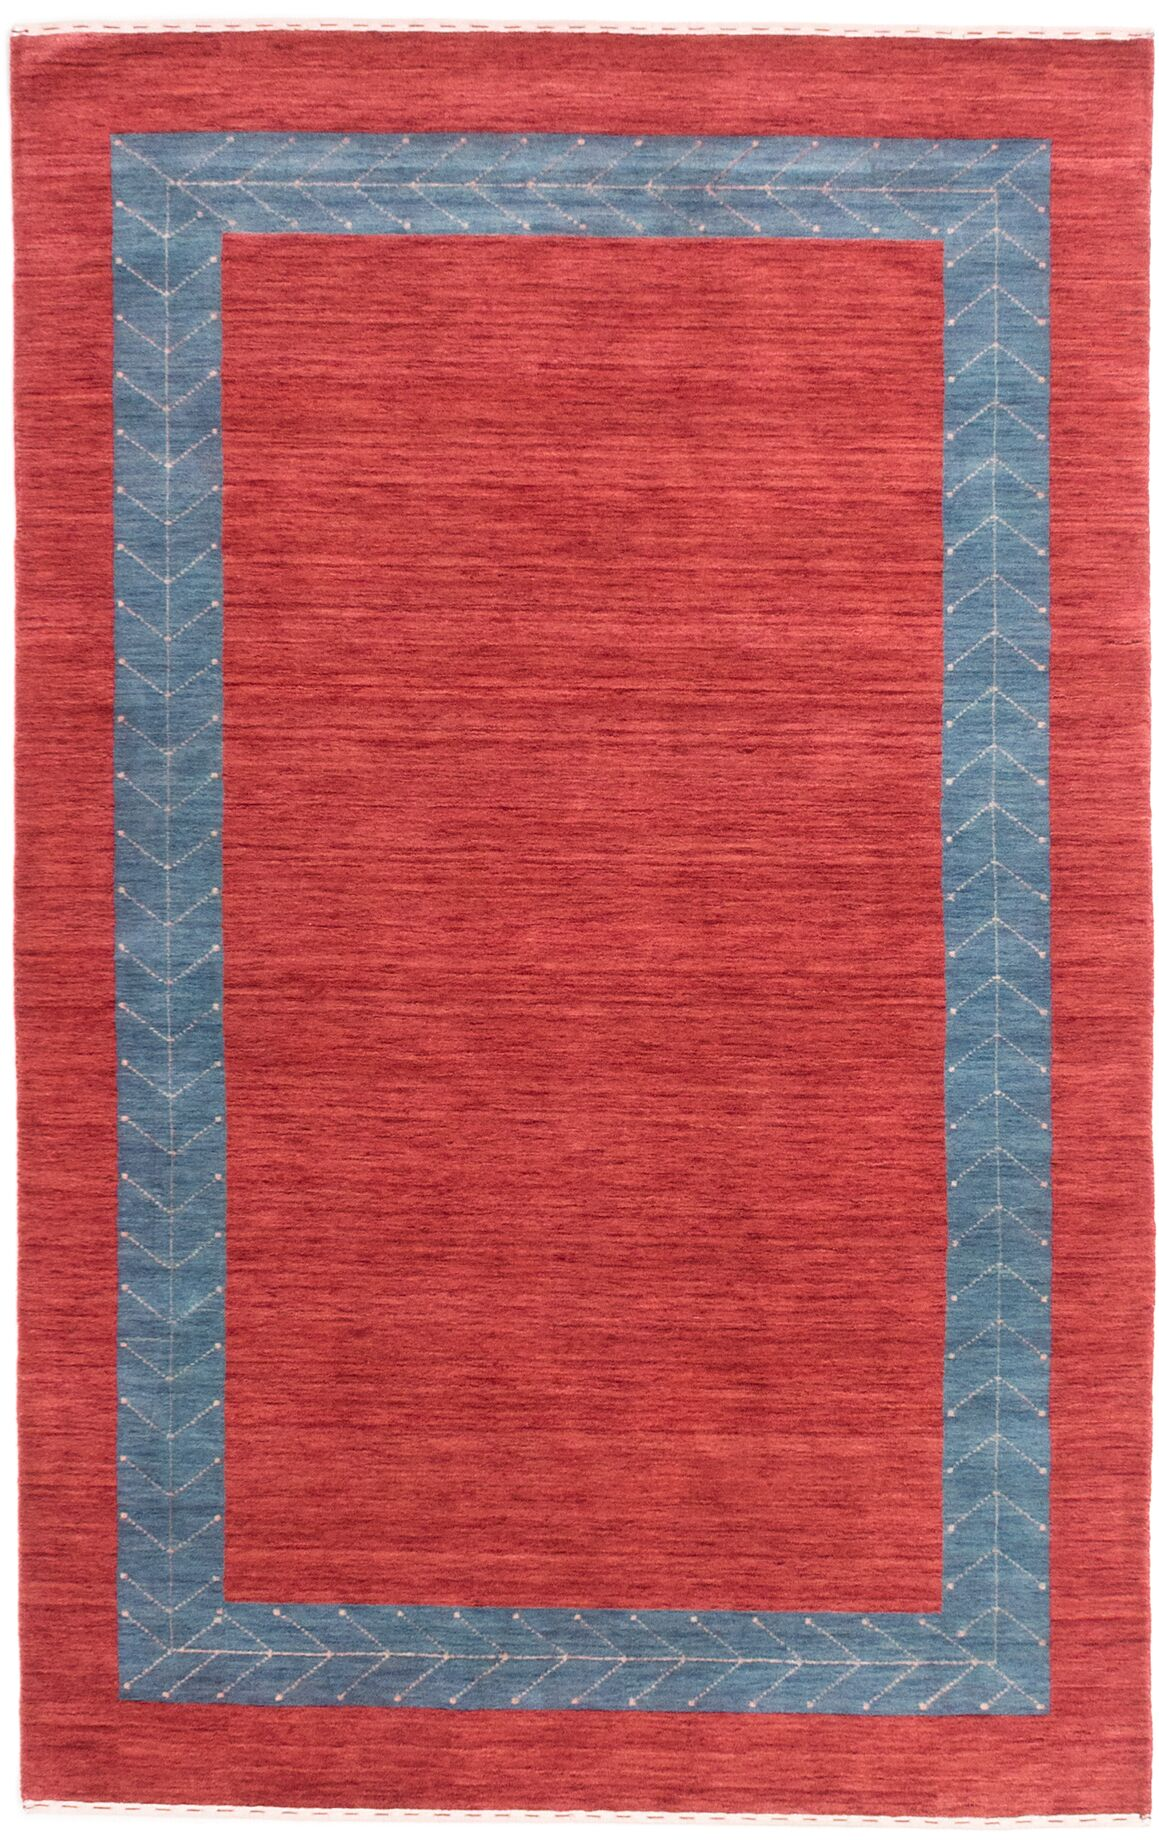 Remy Hand-Knotted Wool Dark Burgundy/Blue Area Rug Rug Size: Rectangle 5' x 8'